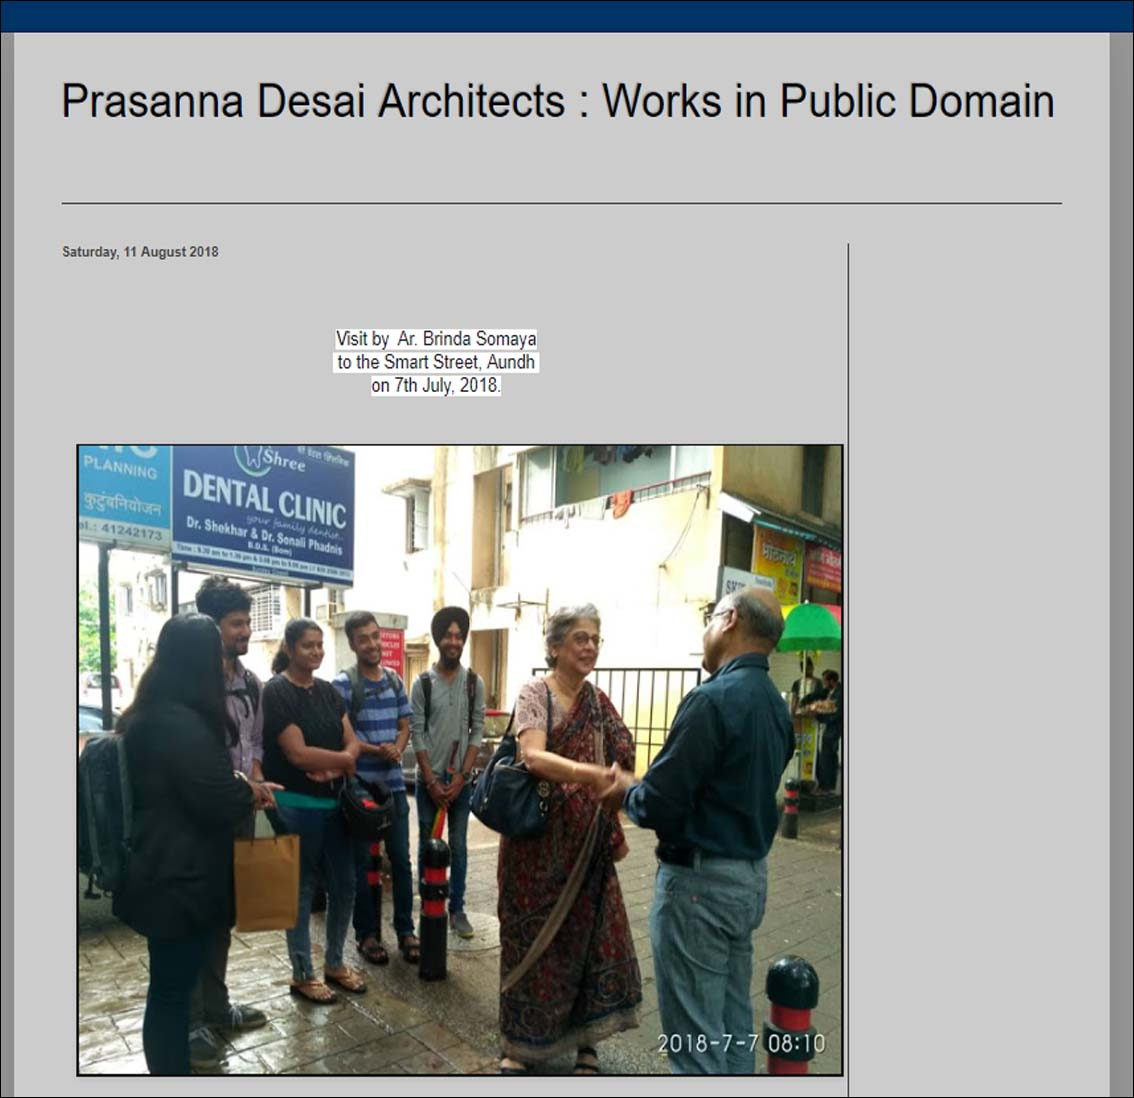 Brinda somaya Prasanna Desai Architects : Works in Public Domain - July 2018